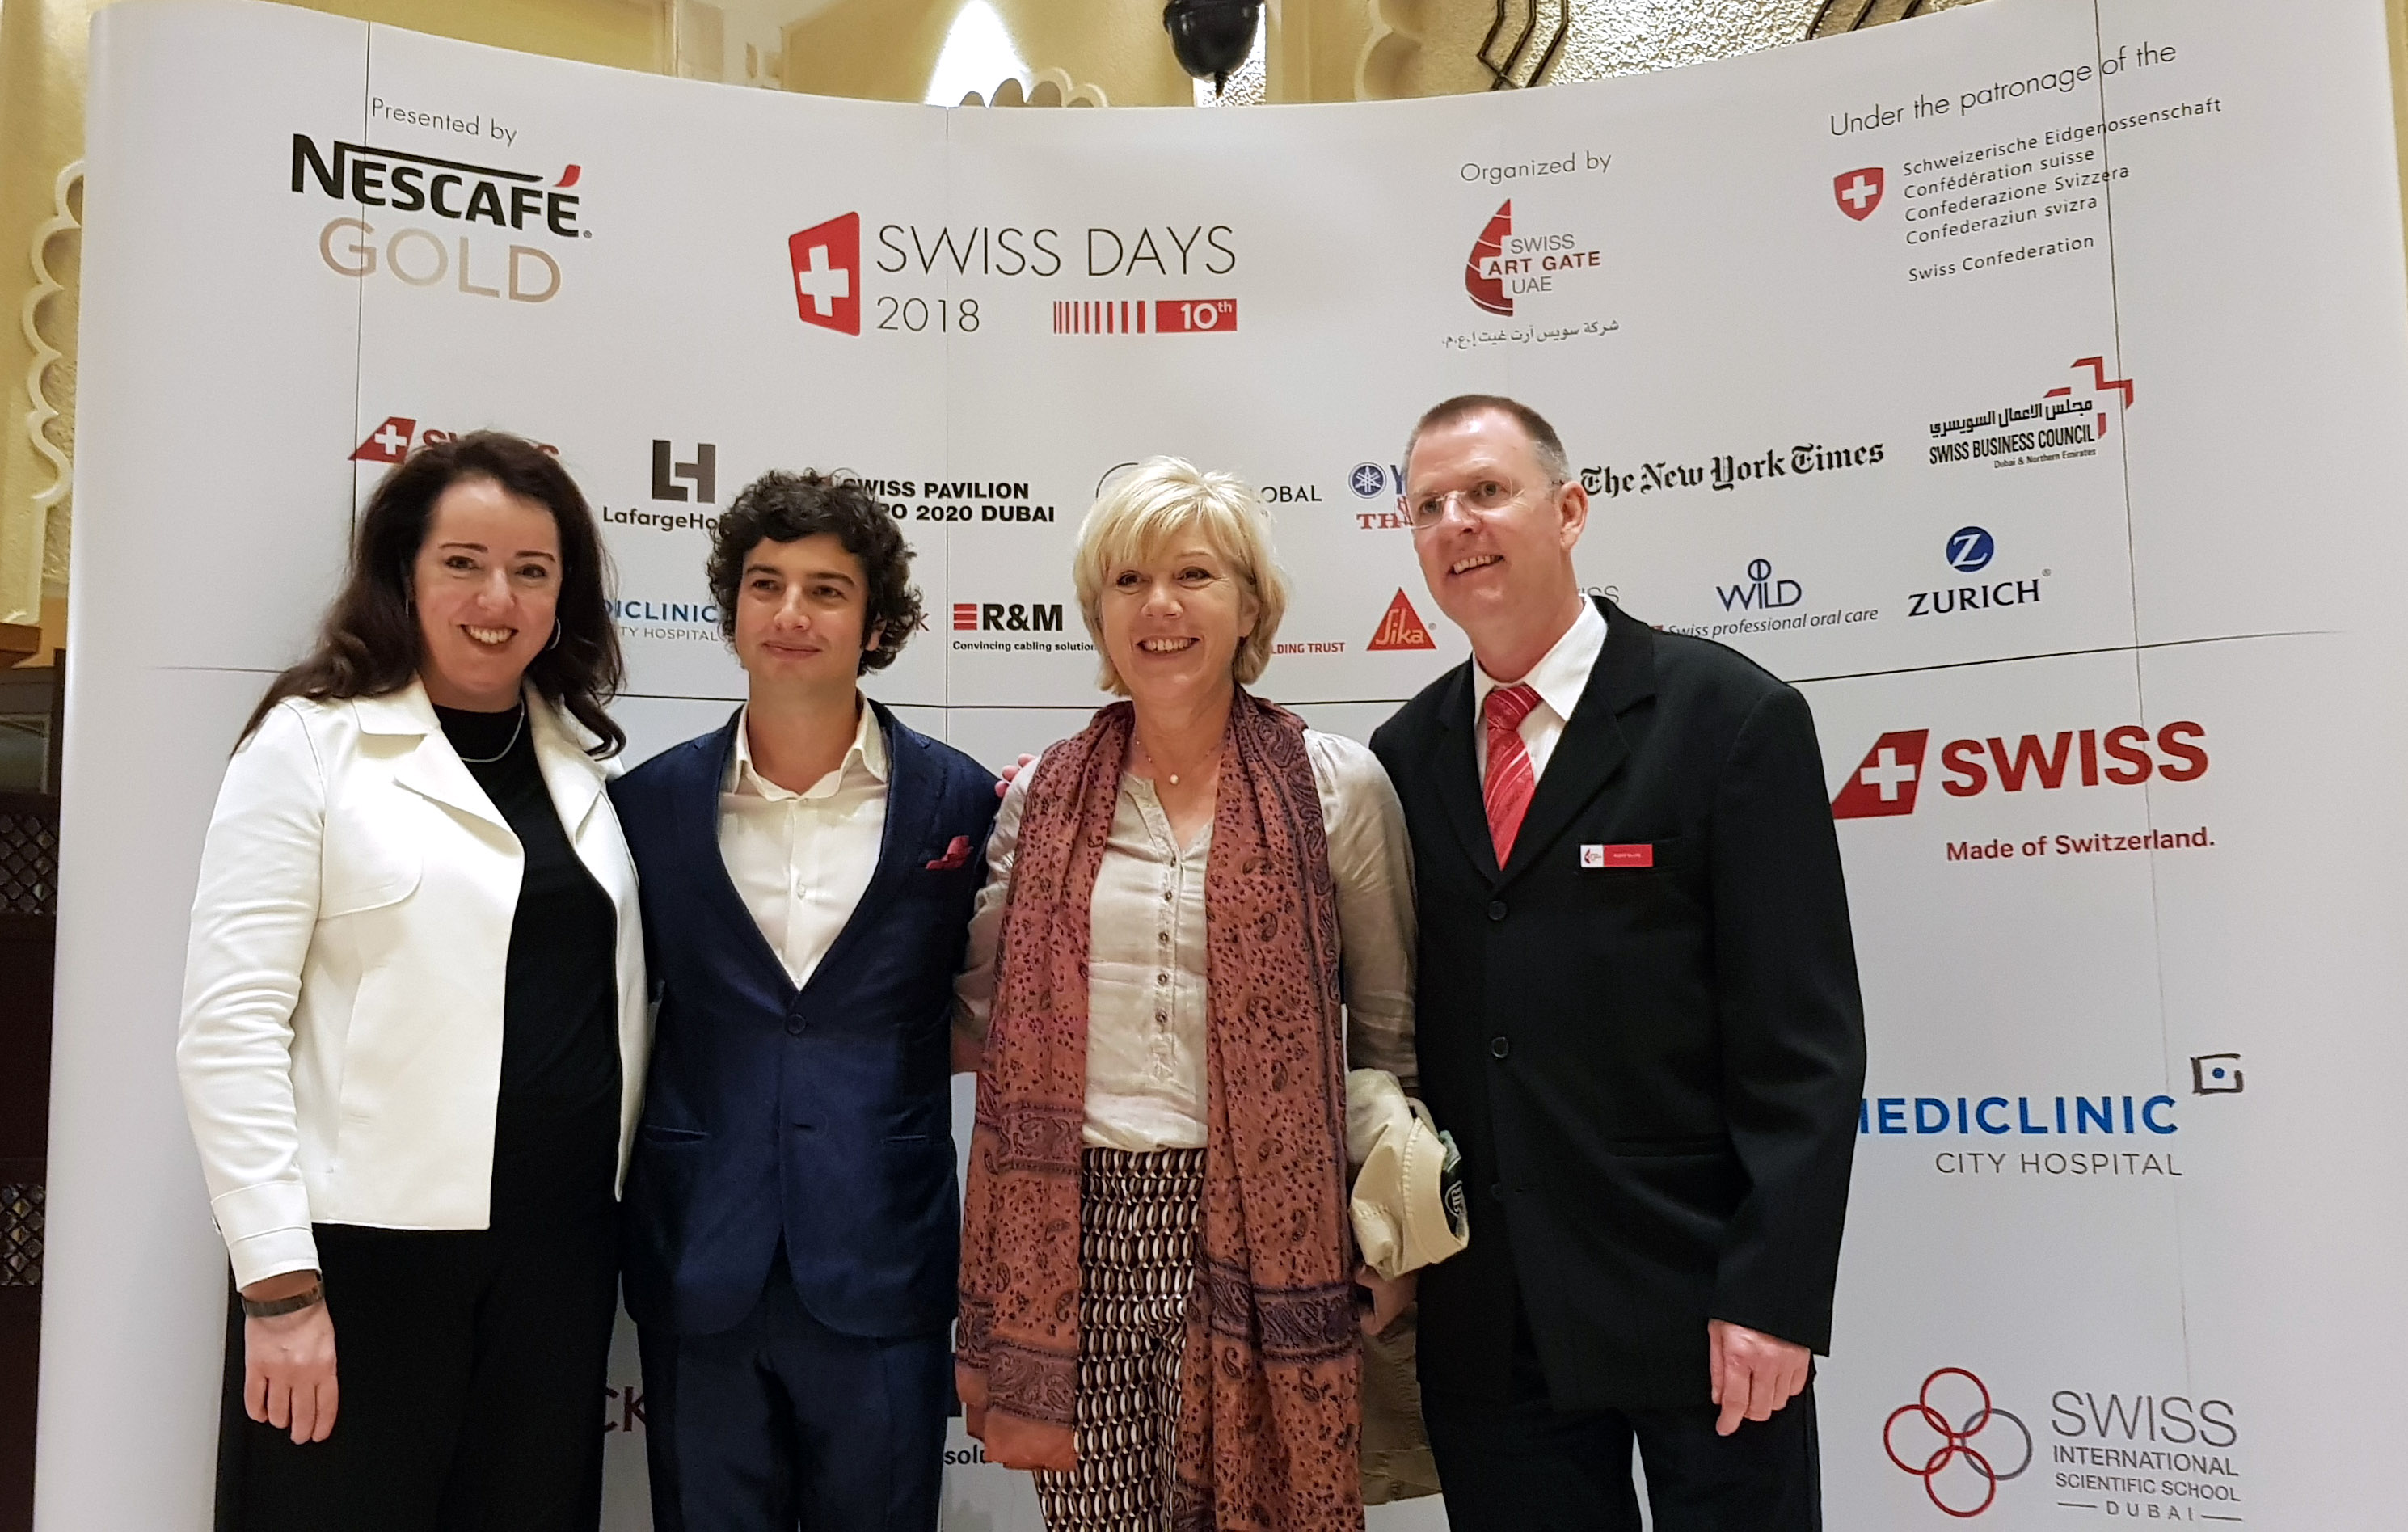 Swiss Days 2018 in Dubai